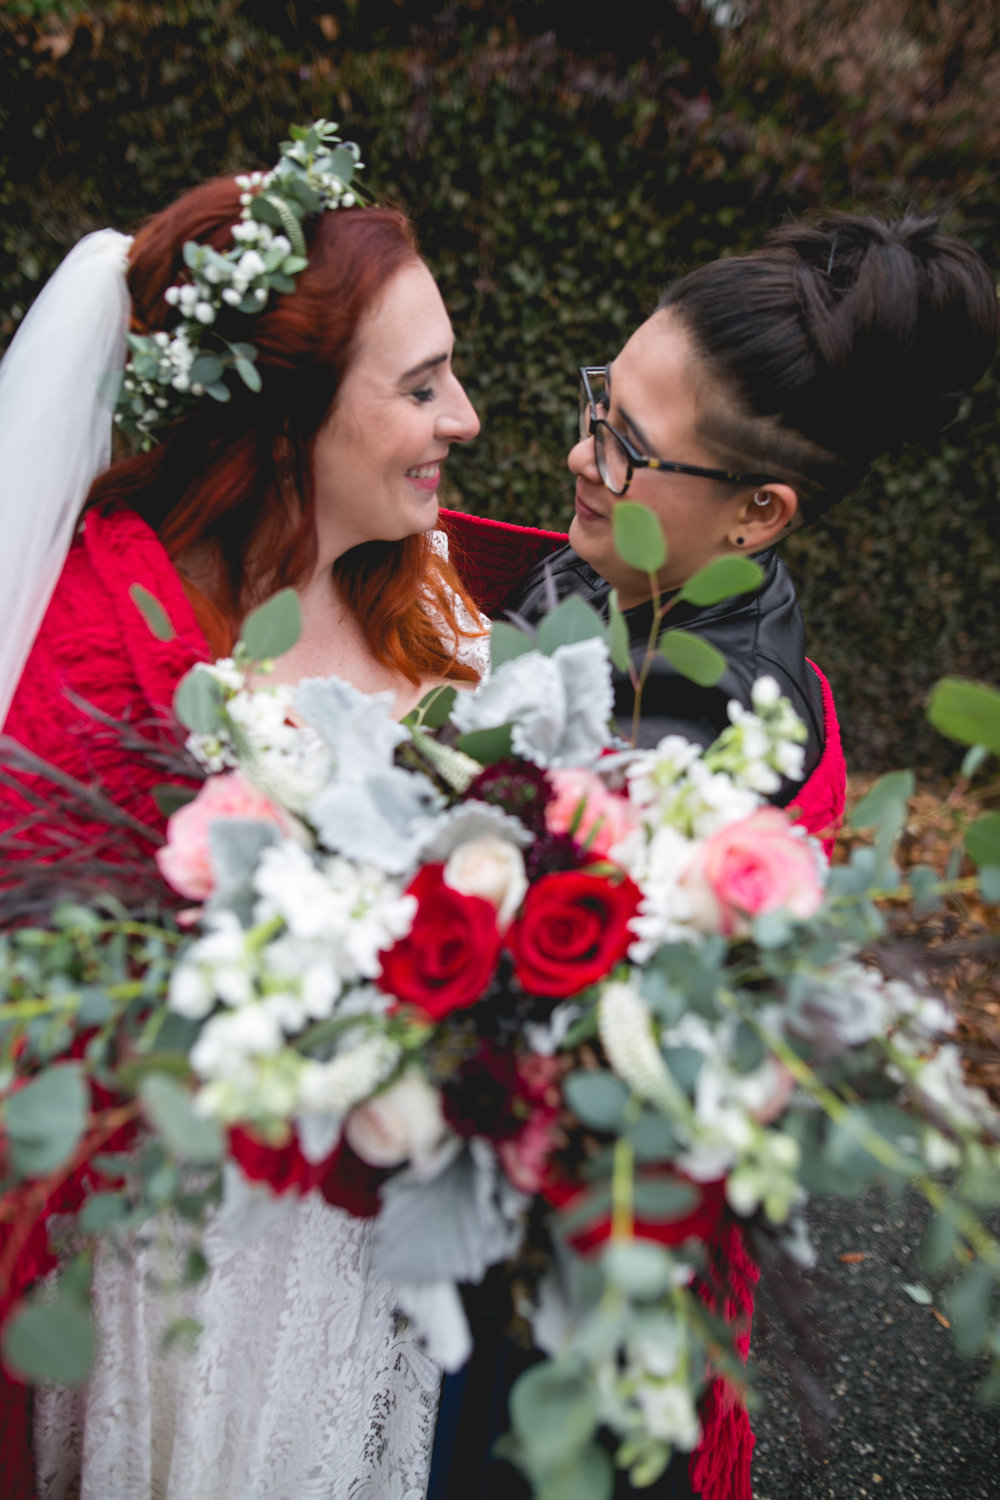 LGBTQ Philadelphia Wedding by Swiger Photography the Lesbian photographer 19